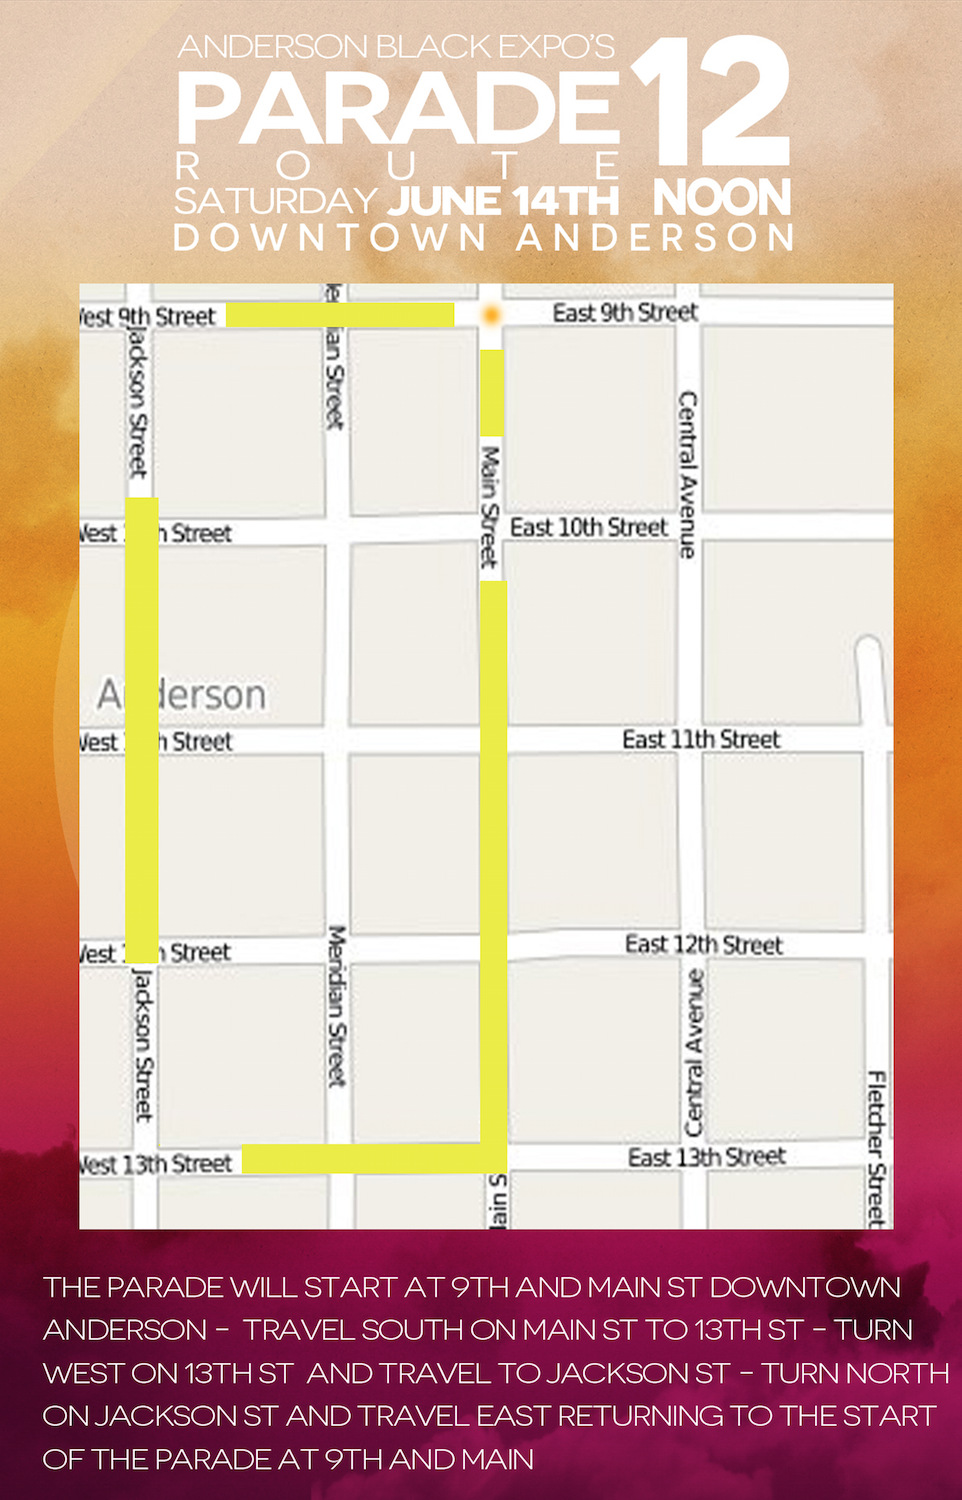 black expo 2014 parade route.png